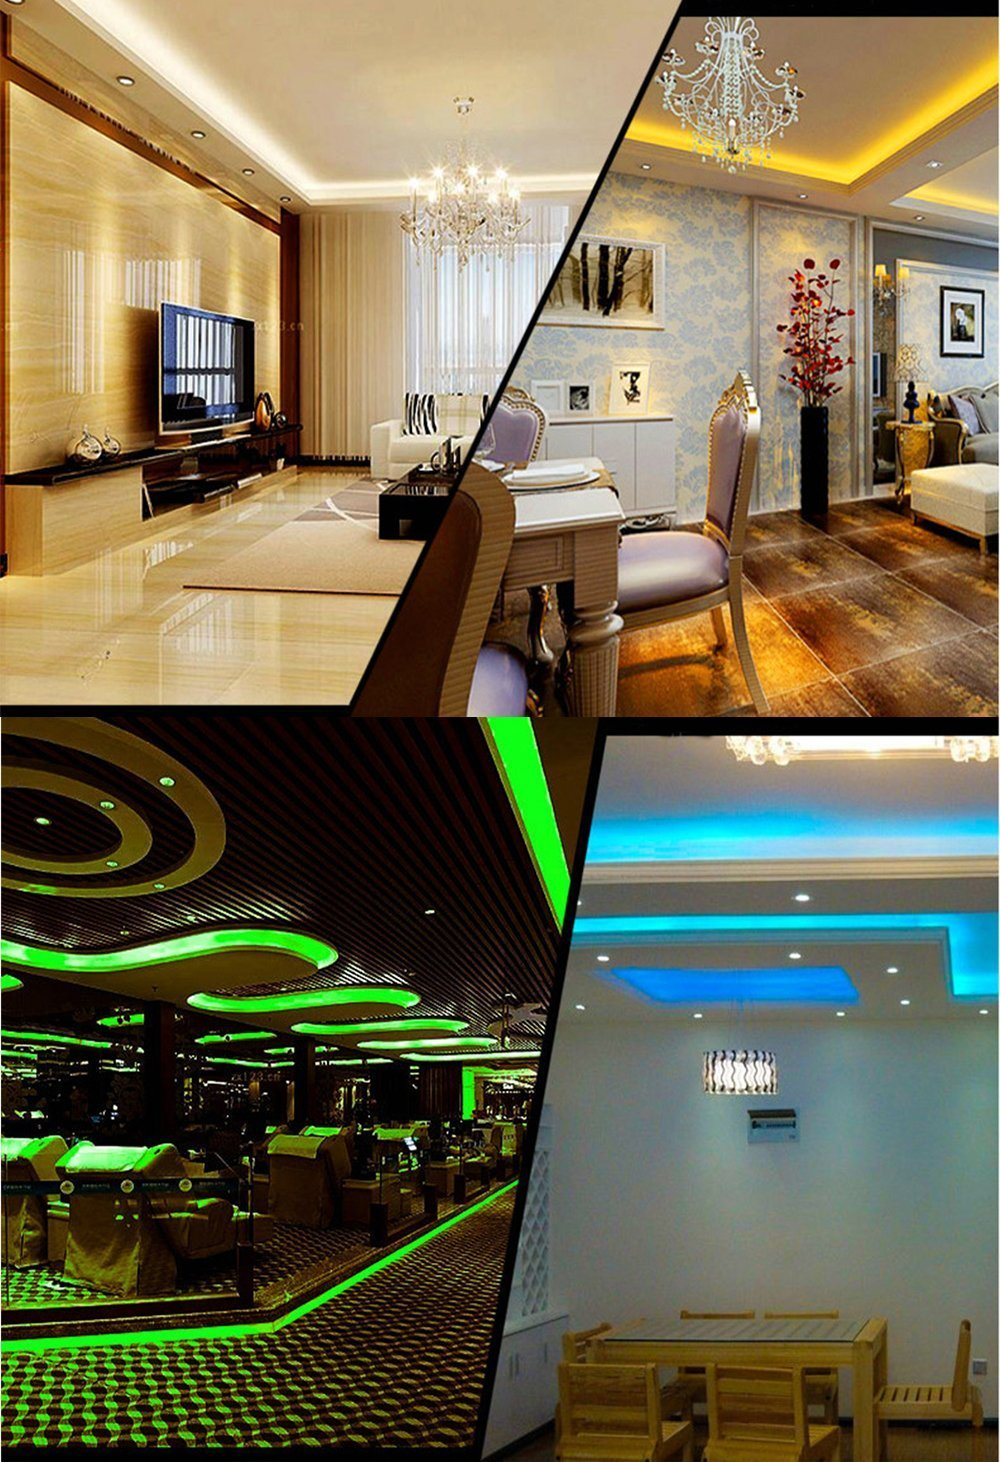 LED Light Strip Kit, Targher RGB LED Strip Waterproof SMD 5050 RGB 16.4Ft/5M 300 LEDs with 44Key Remote Controller and Power Supply for Holiday Party Outdoor Decoration by Targher (Image #5)